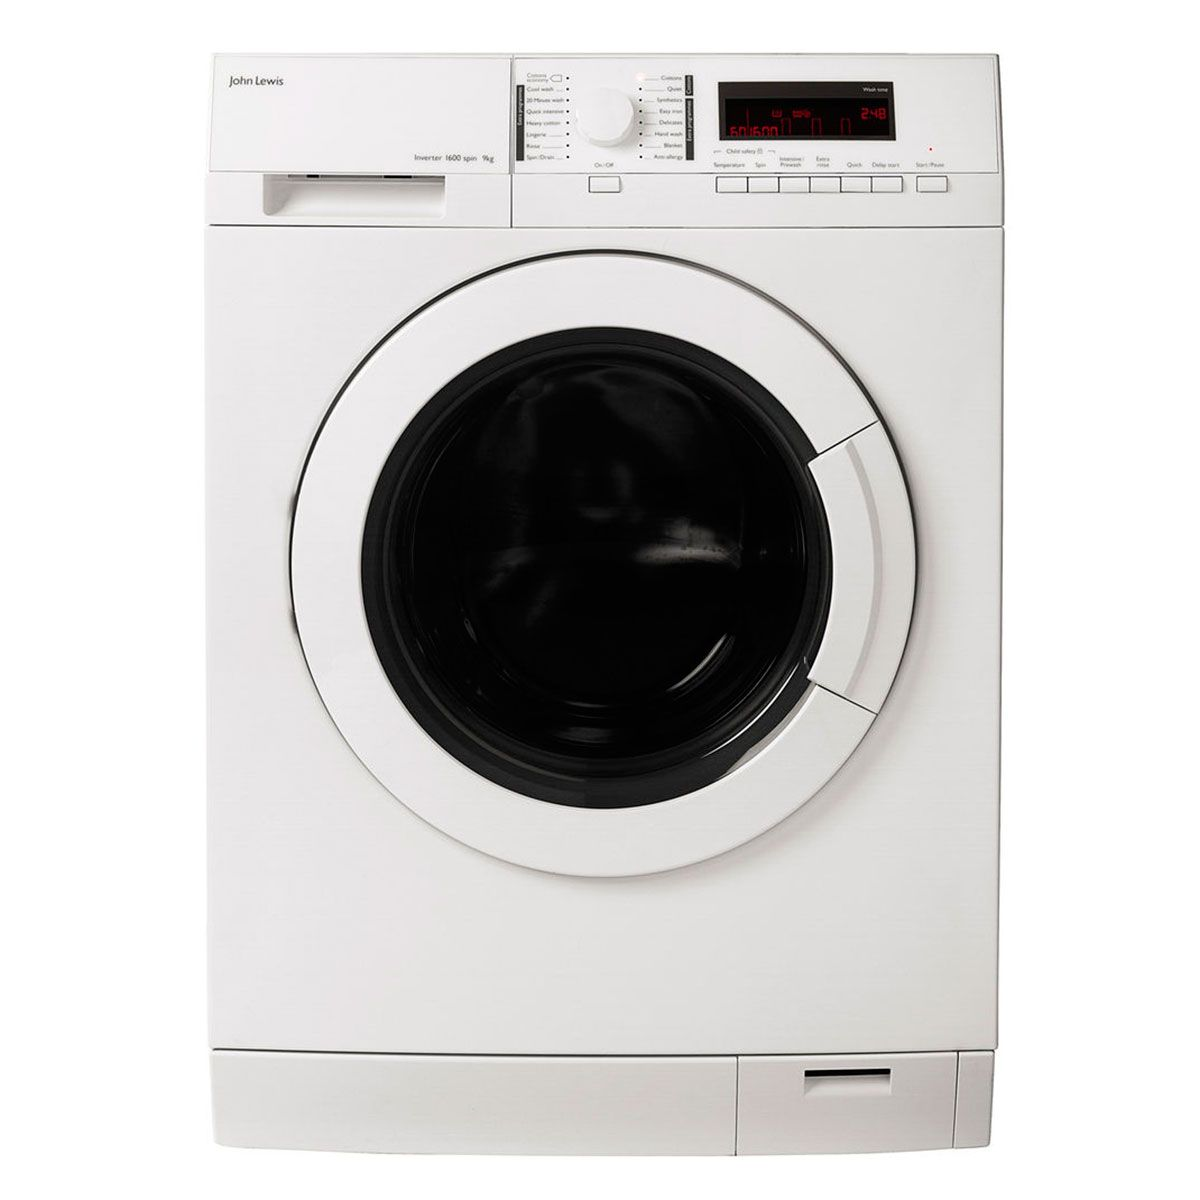 1b77cd035fa John Lewis JLWM1606 Washing Machine review